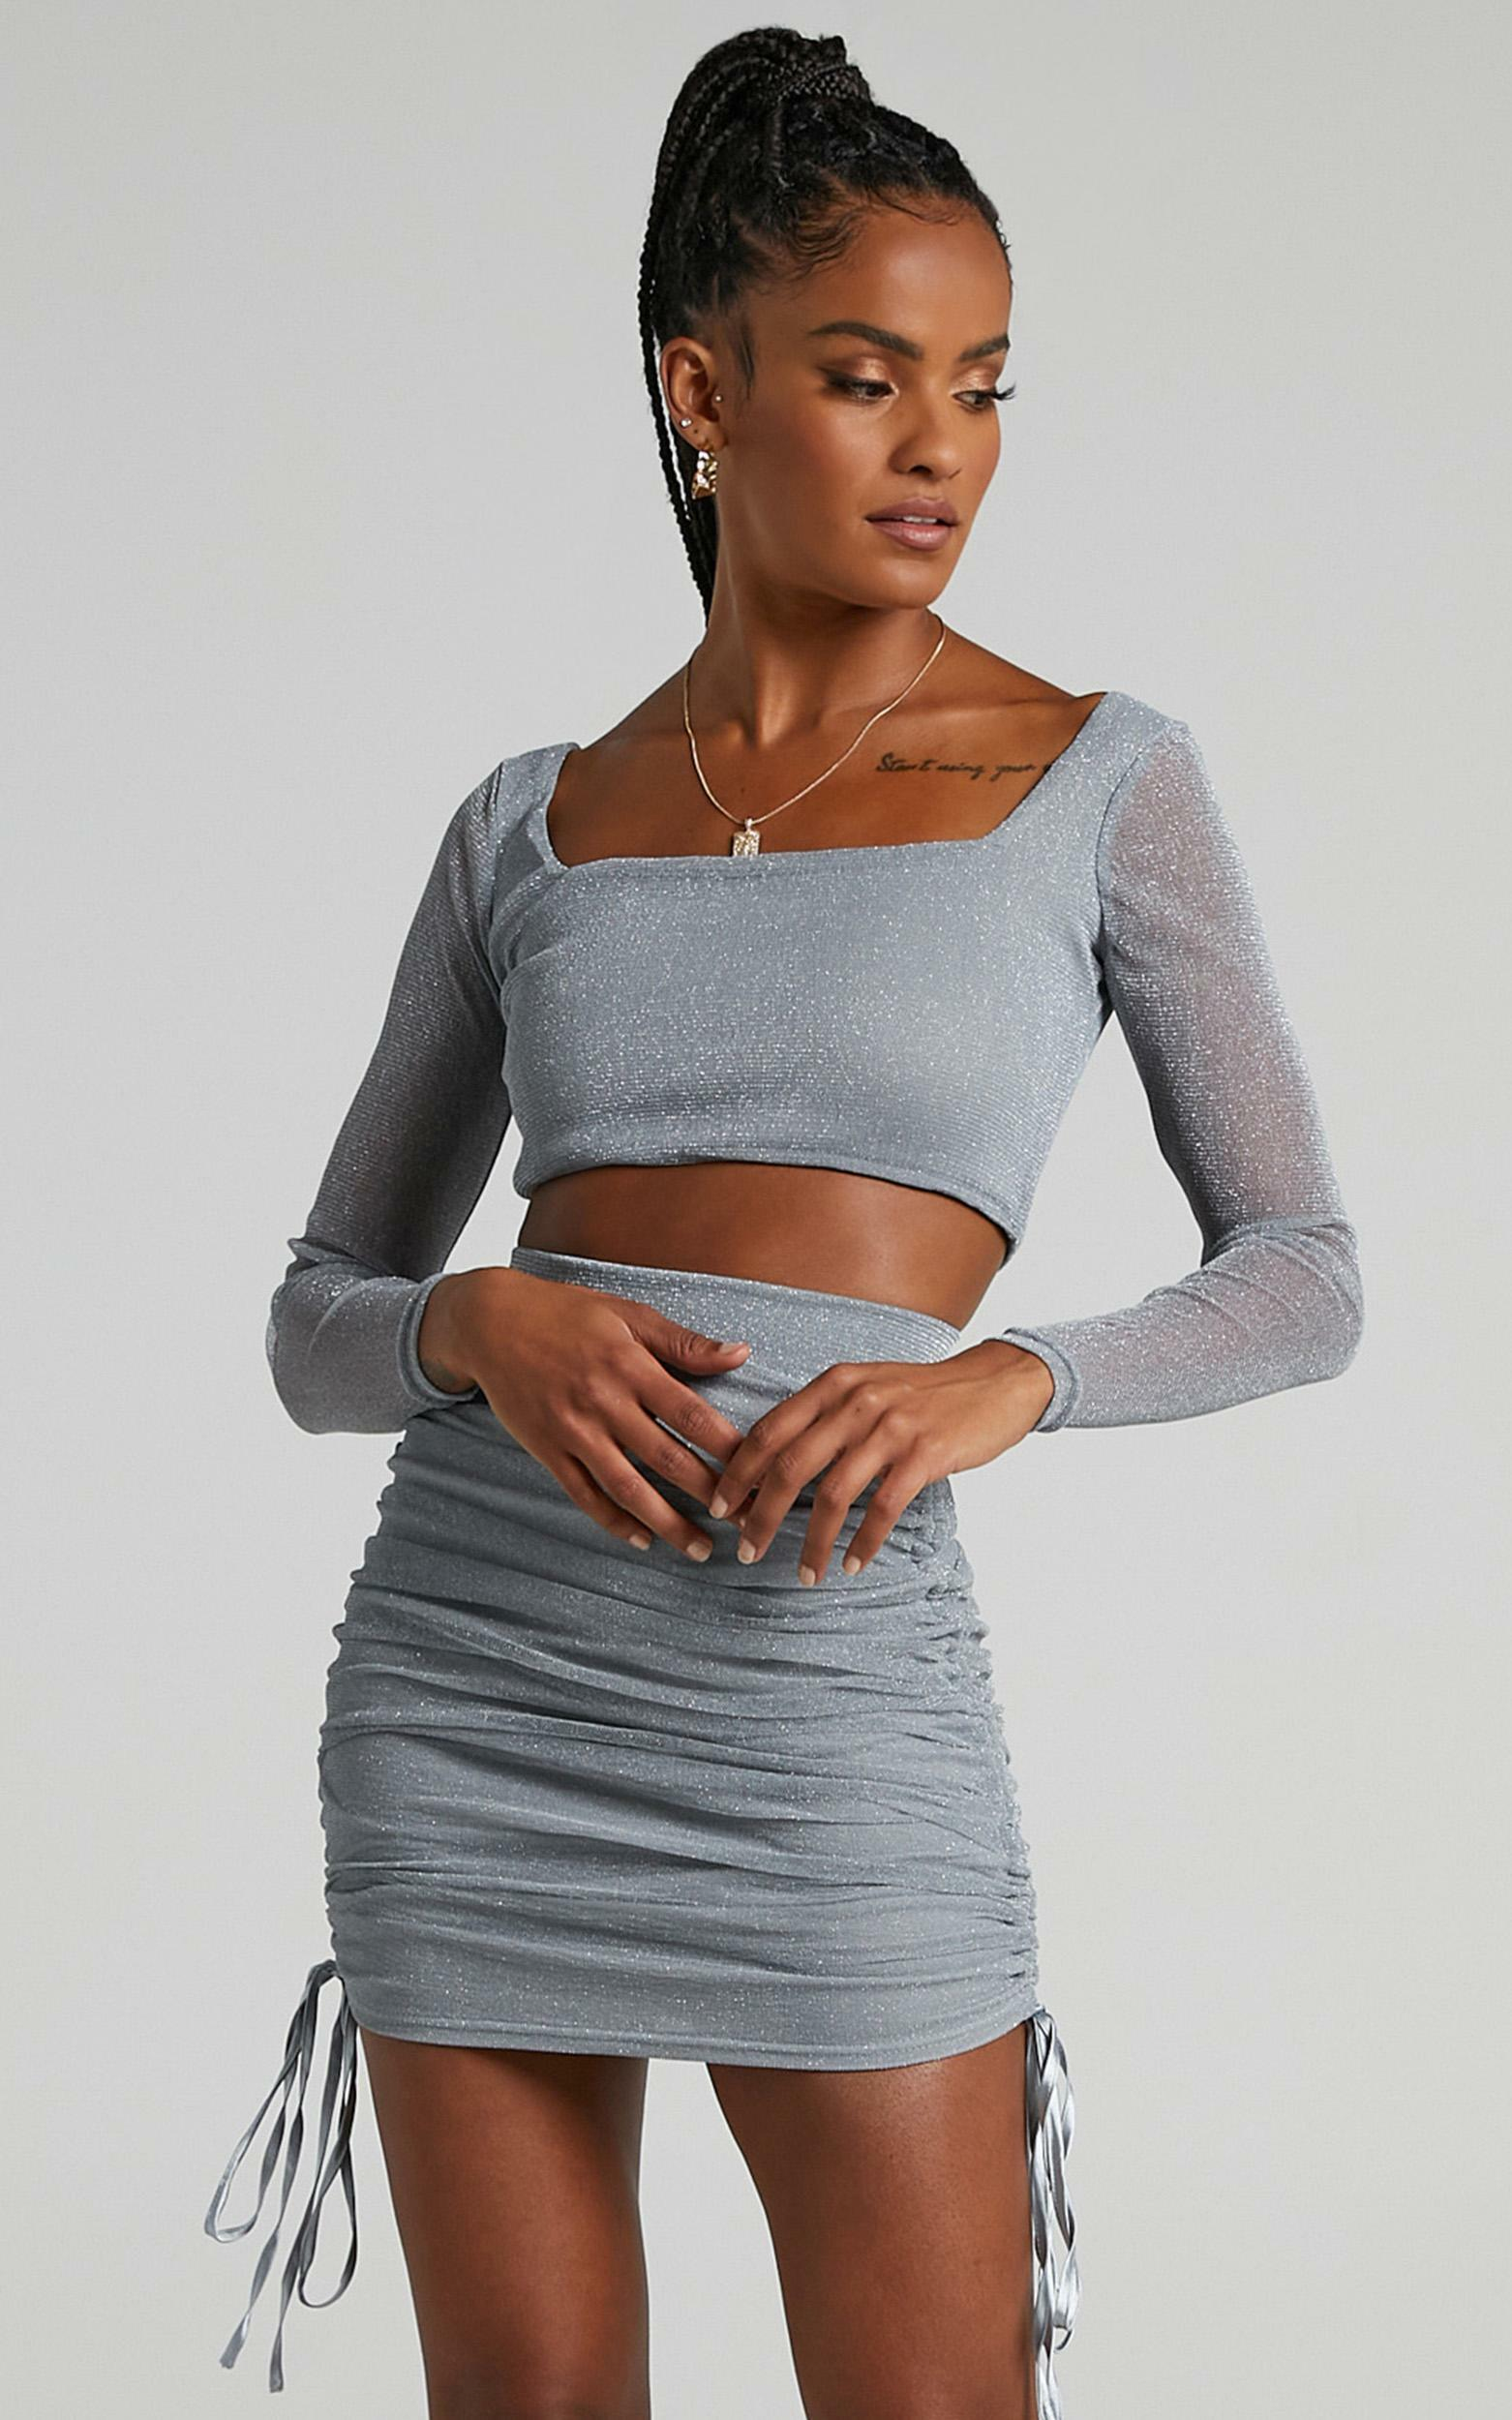 Glitter Two Piece Set in Silver - 4 (XXS), Silver, hi-res image number null